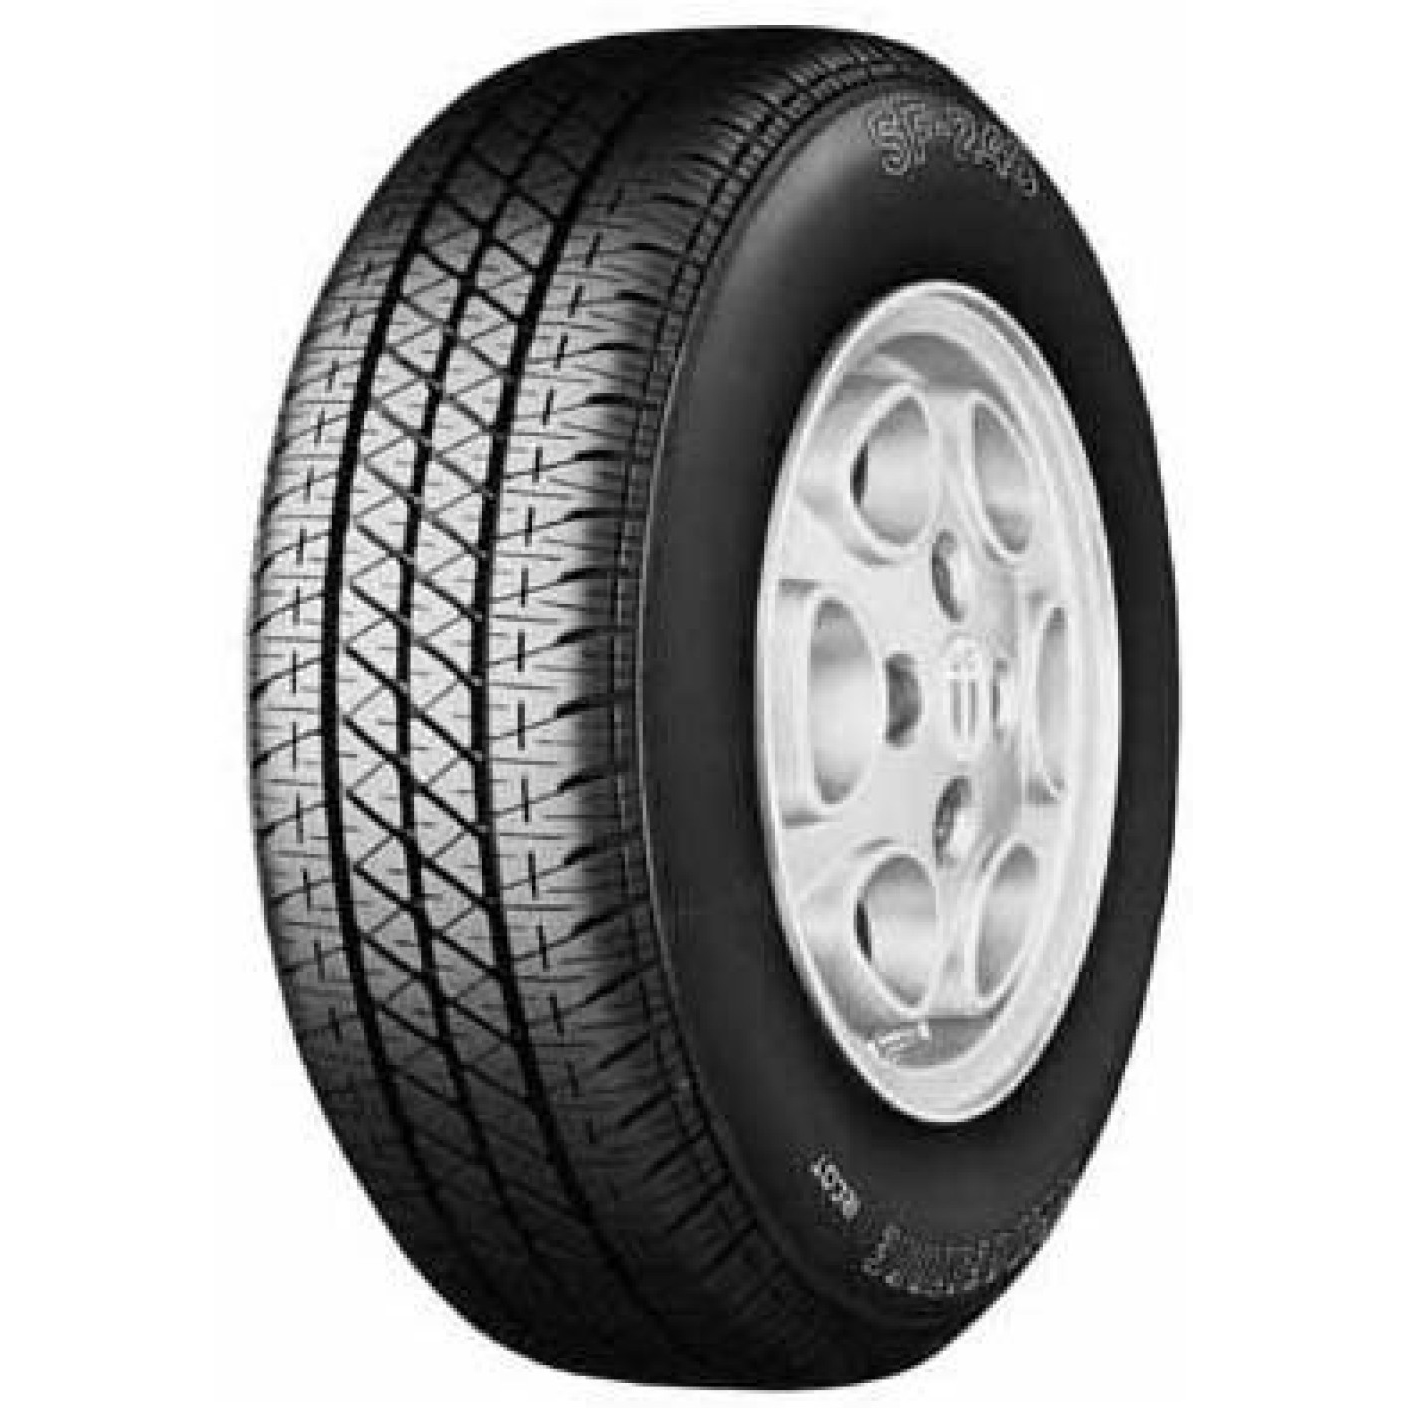 Bridgestone S248 145/80 R 12 Requires Tube 74 S Car Tyre